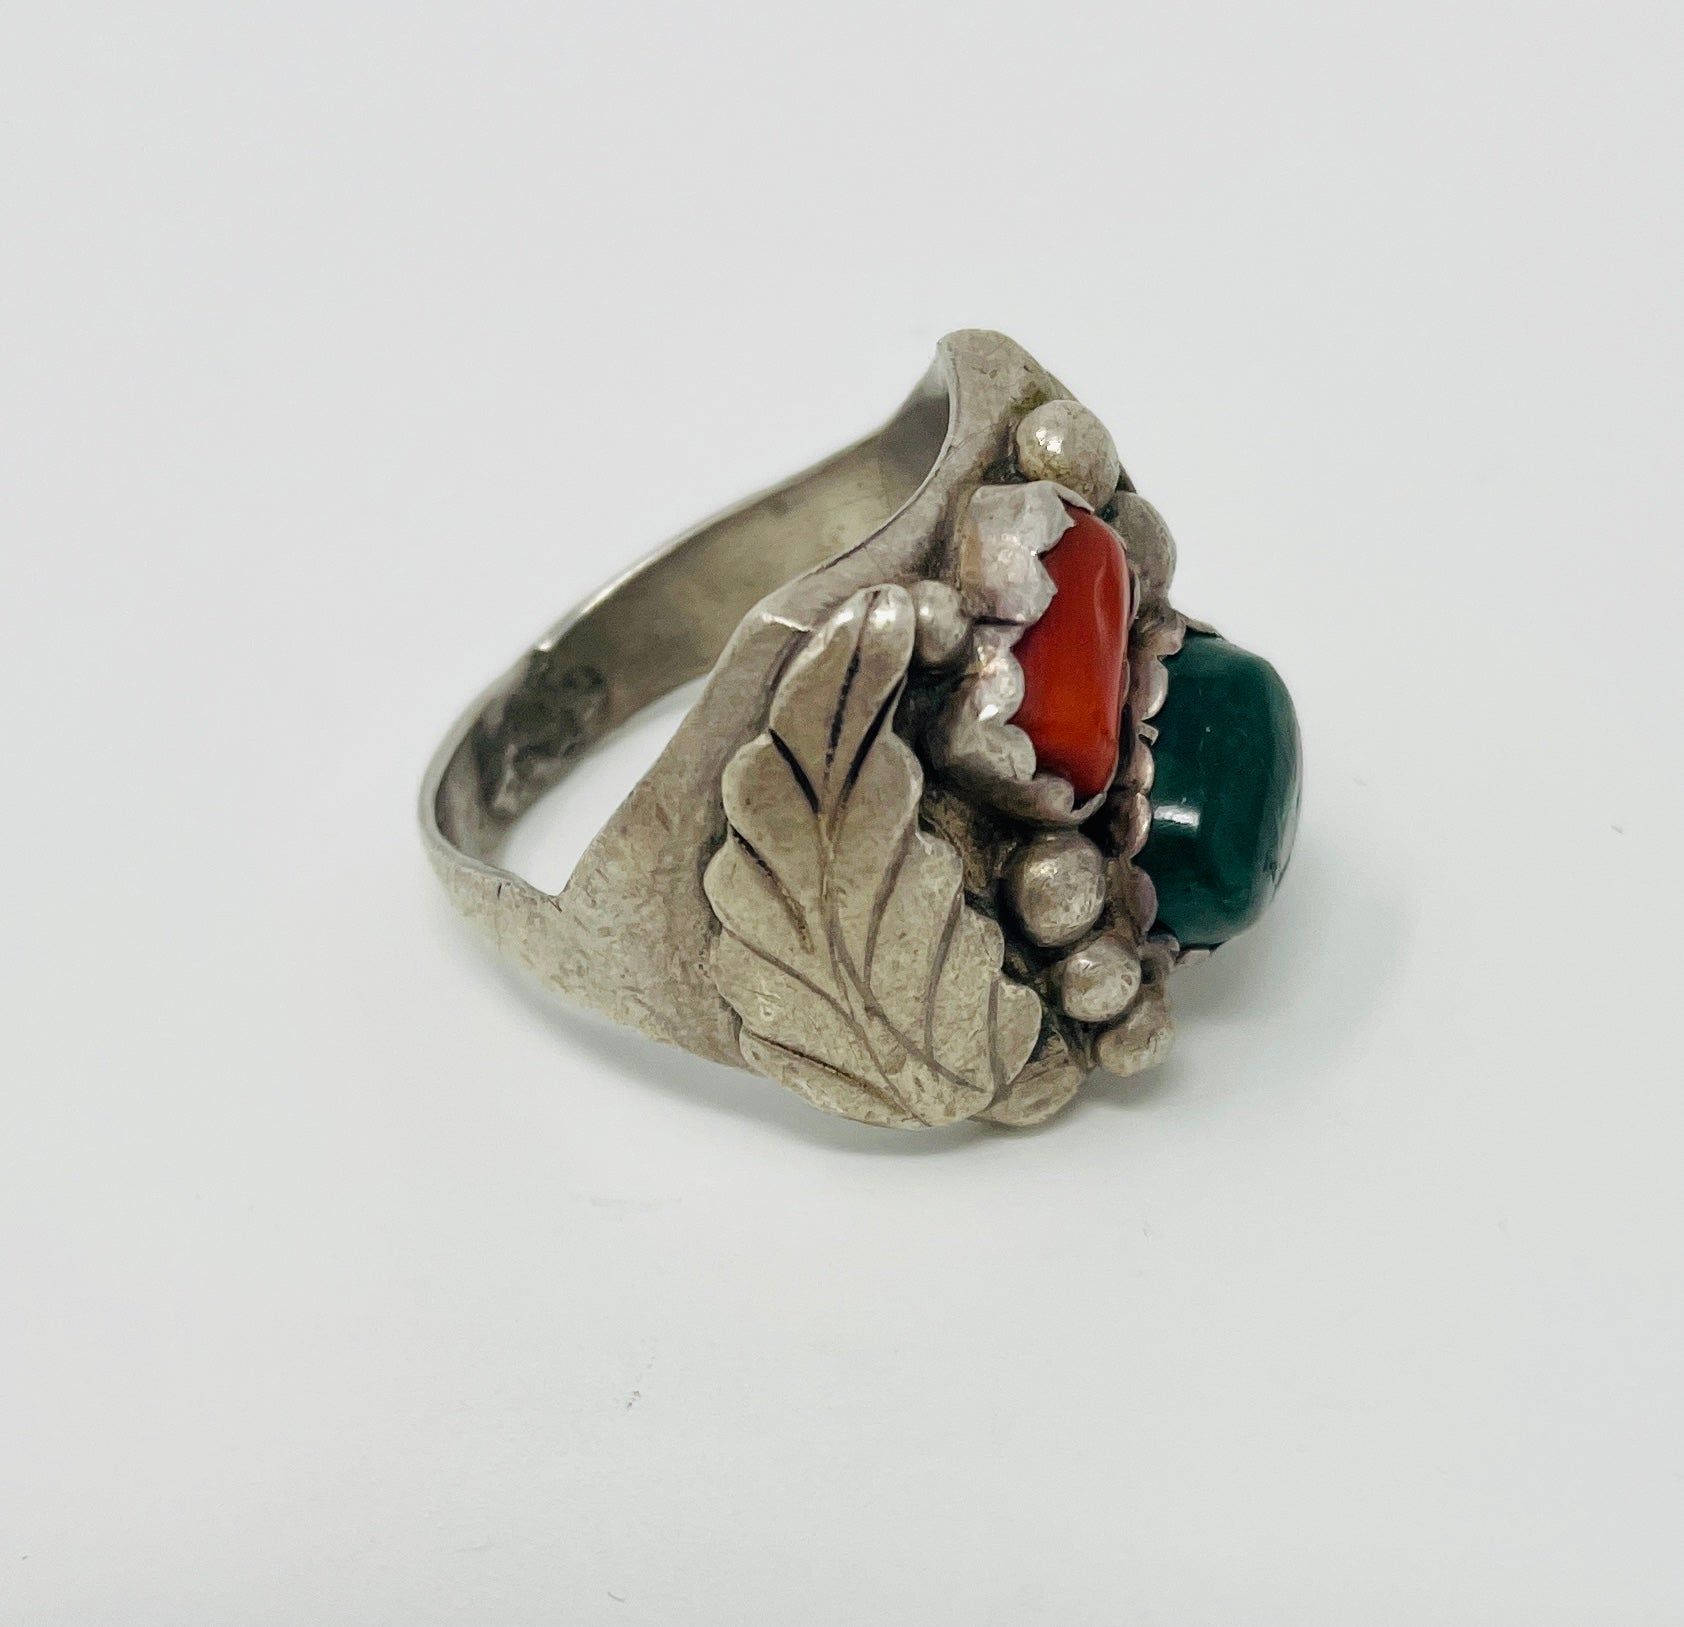 Navajo Ring with Turquoise, Coral and Raindrops